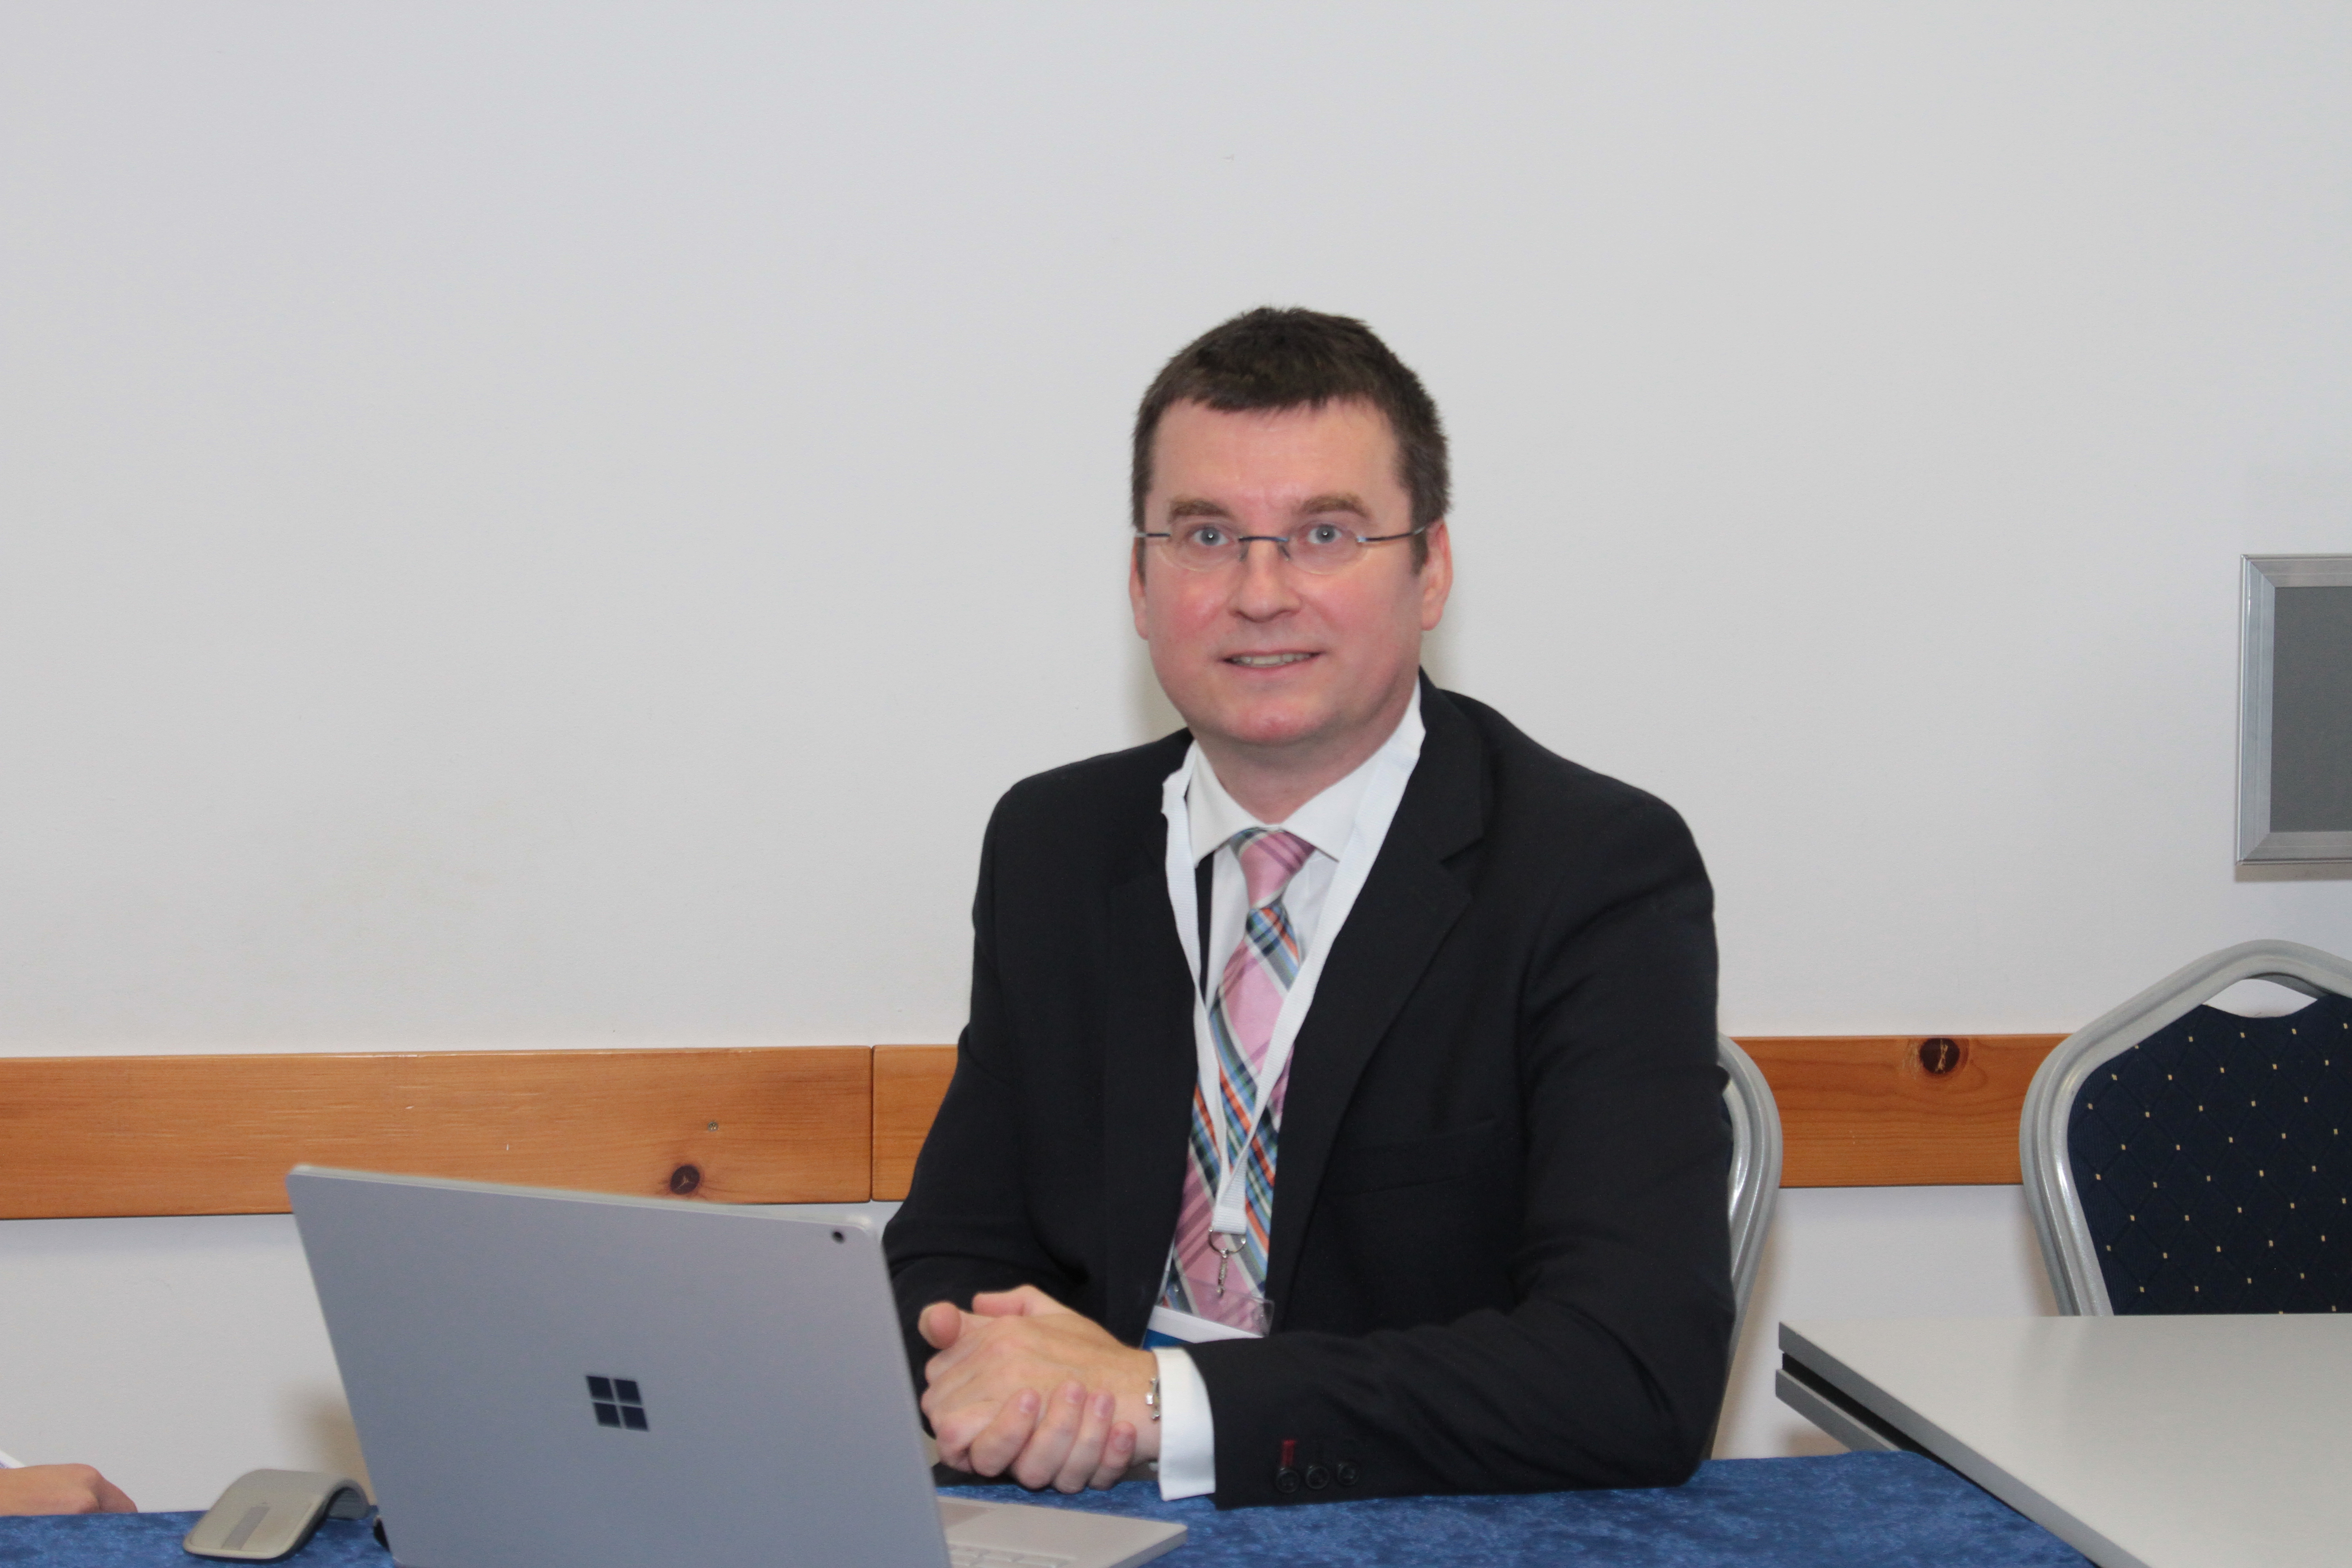 INTERVIEW: Use of unsupported software opens holes in CEE companies' cyber security